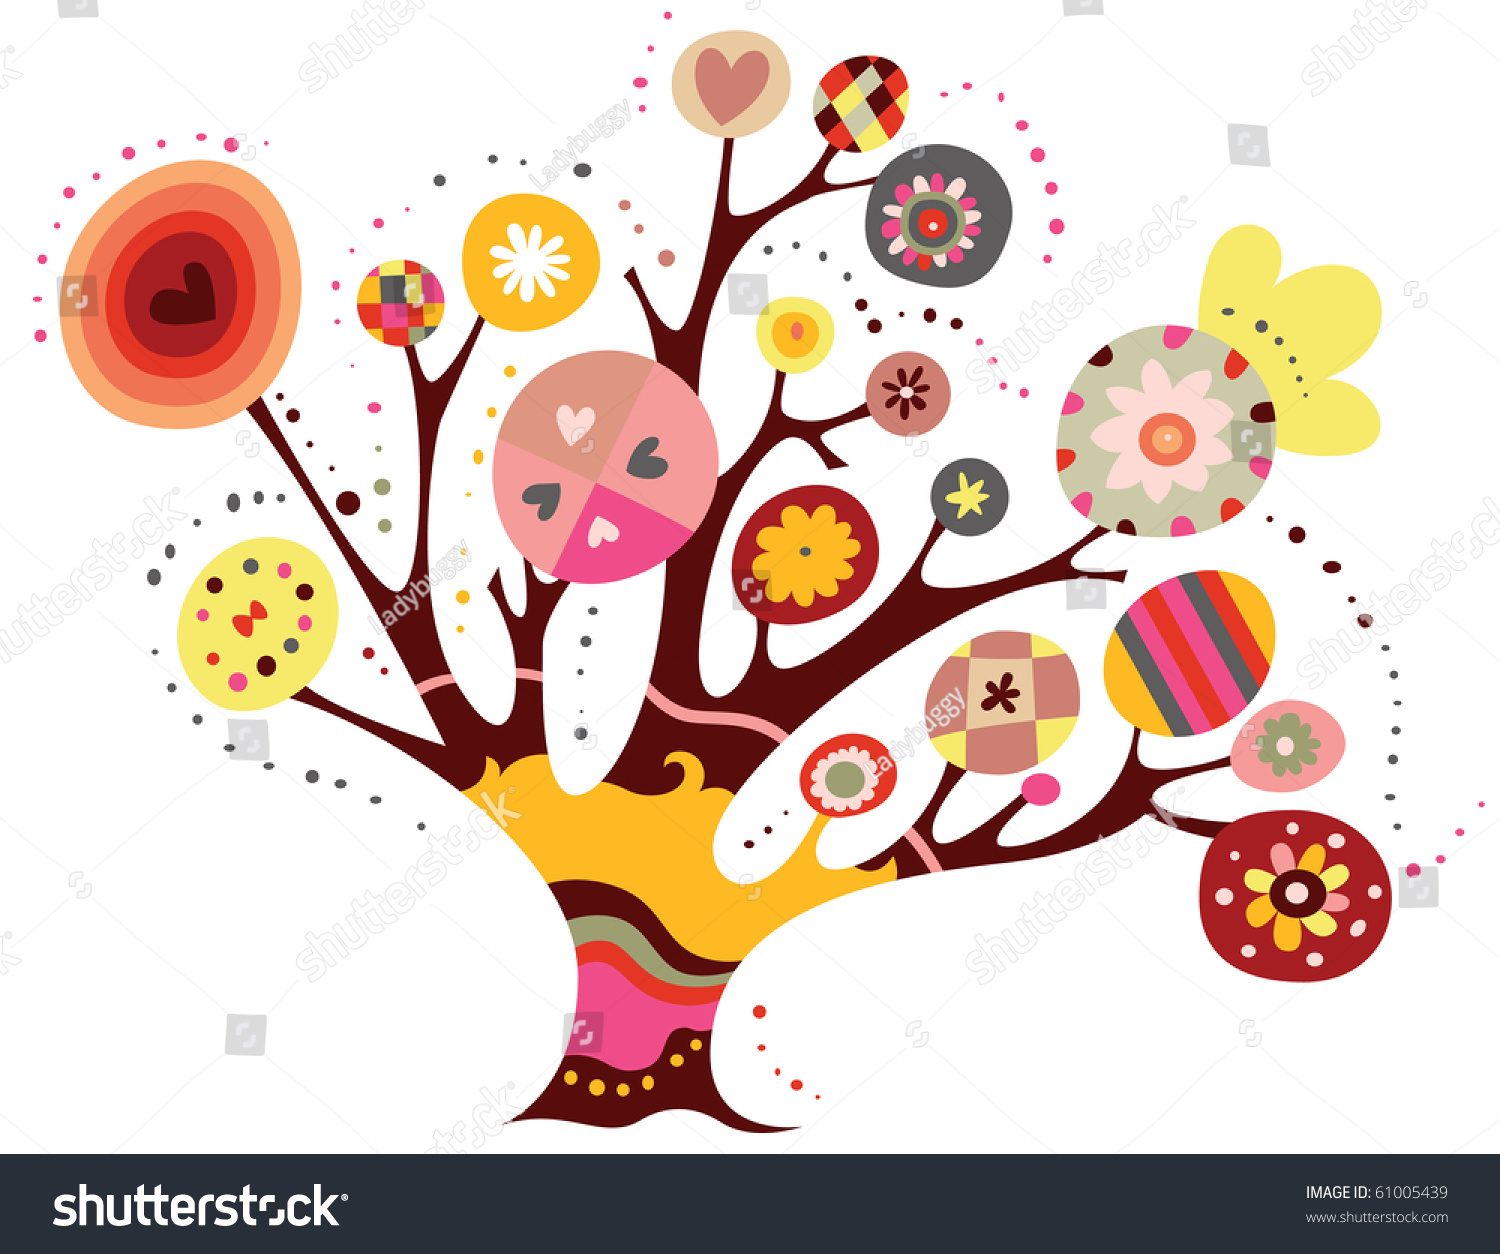 Whimsical Tree Geometric Shapes Bright Colors Stock Vector ...